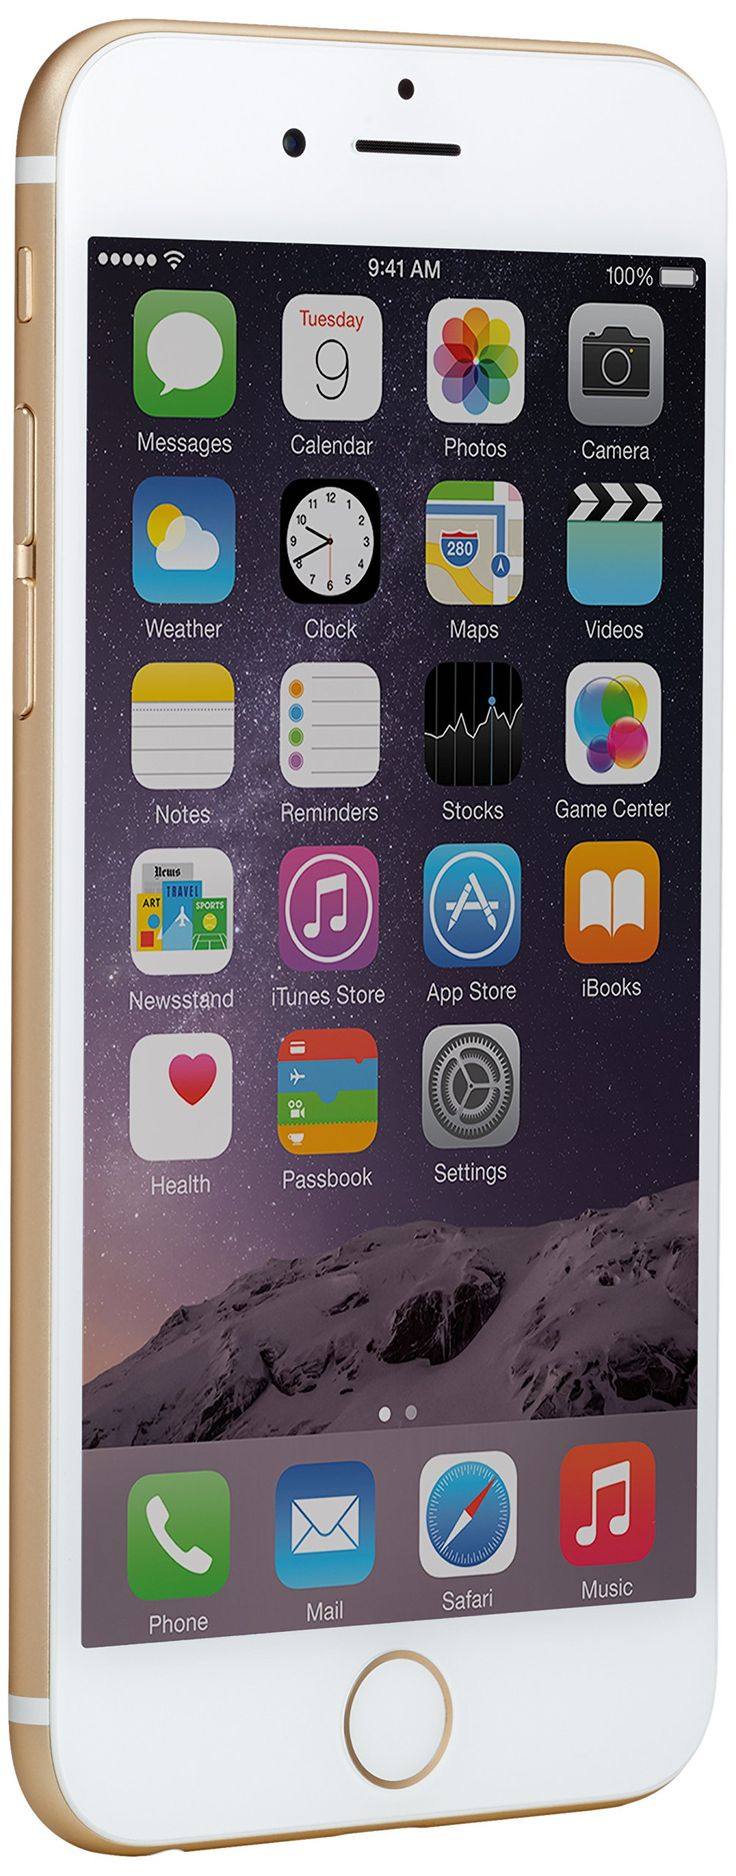 Apple iPhone 6 A1549 AT&T Cellphone, 16GB, Gold